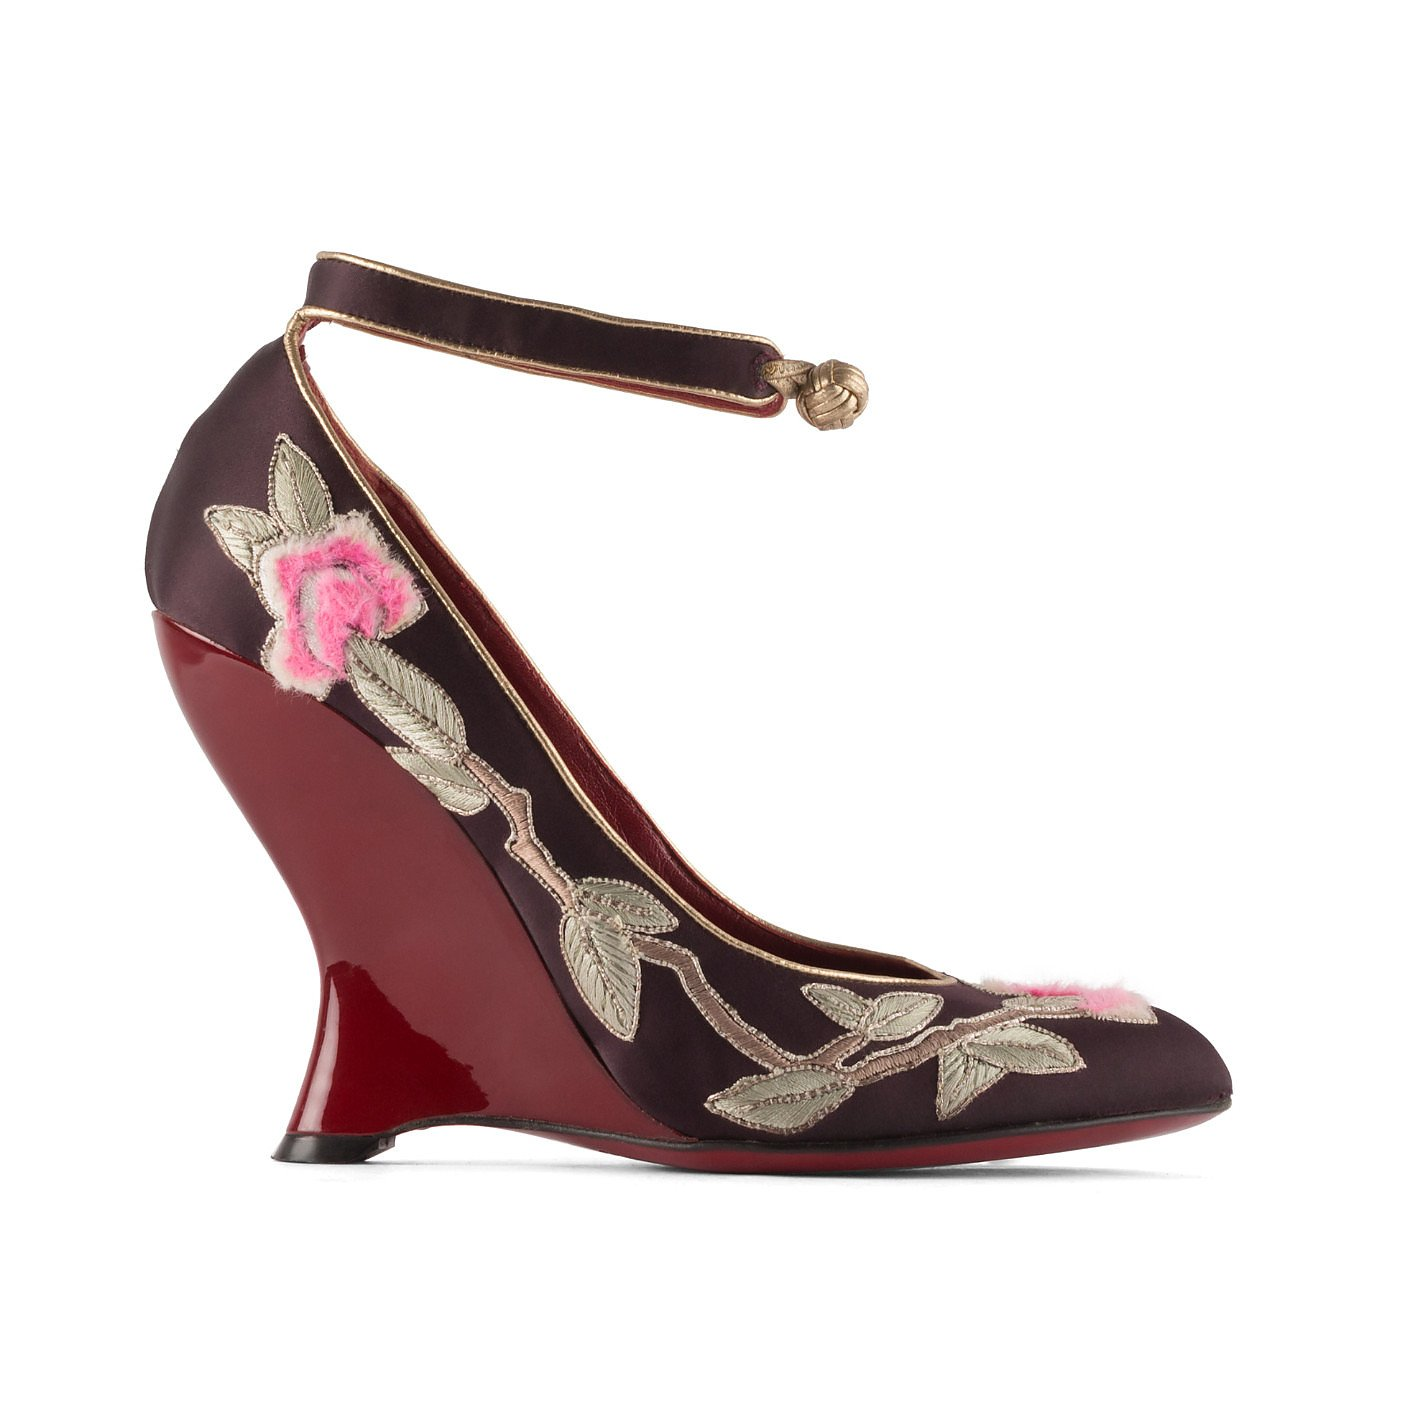 Yves Saint Laurent Embroidered Floral Wedges